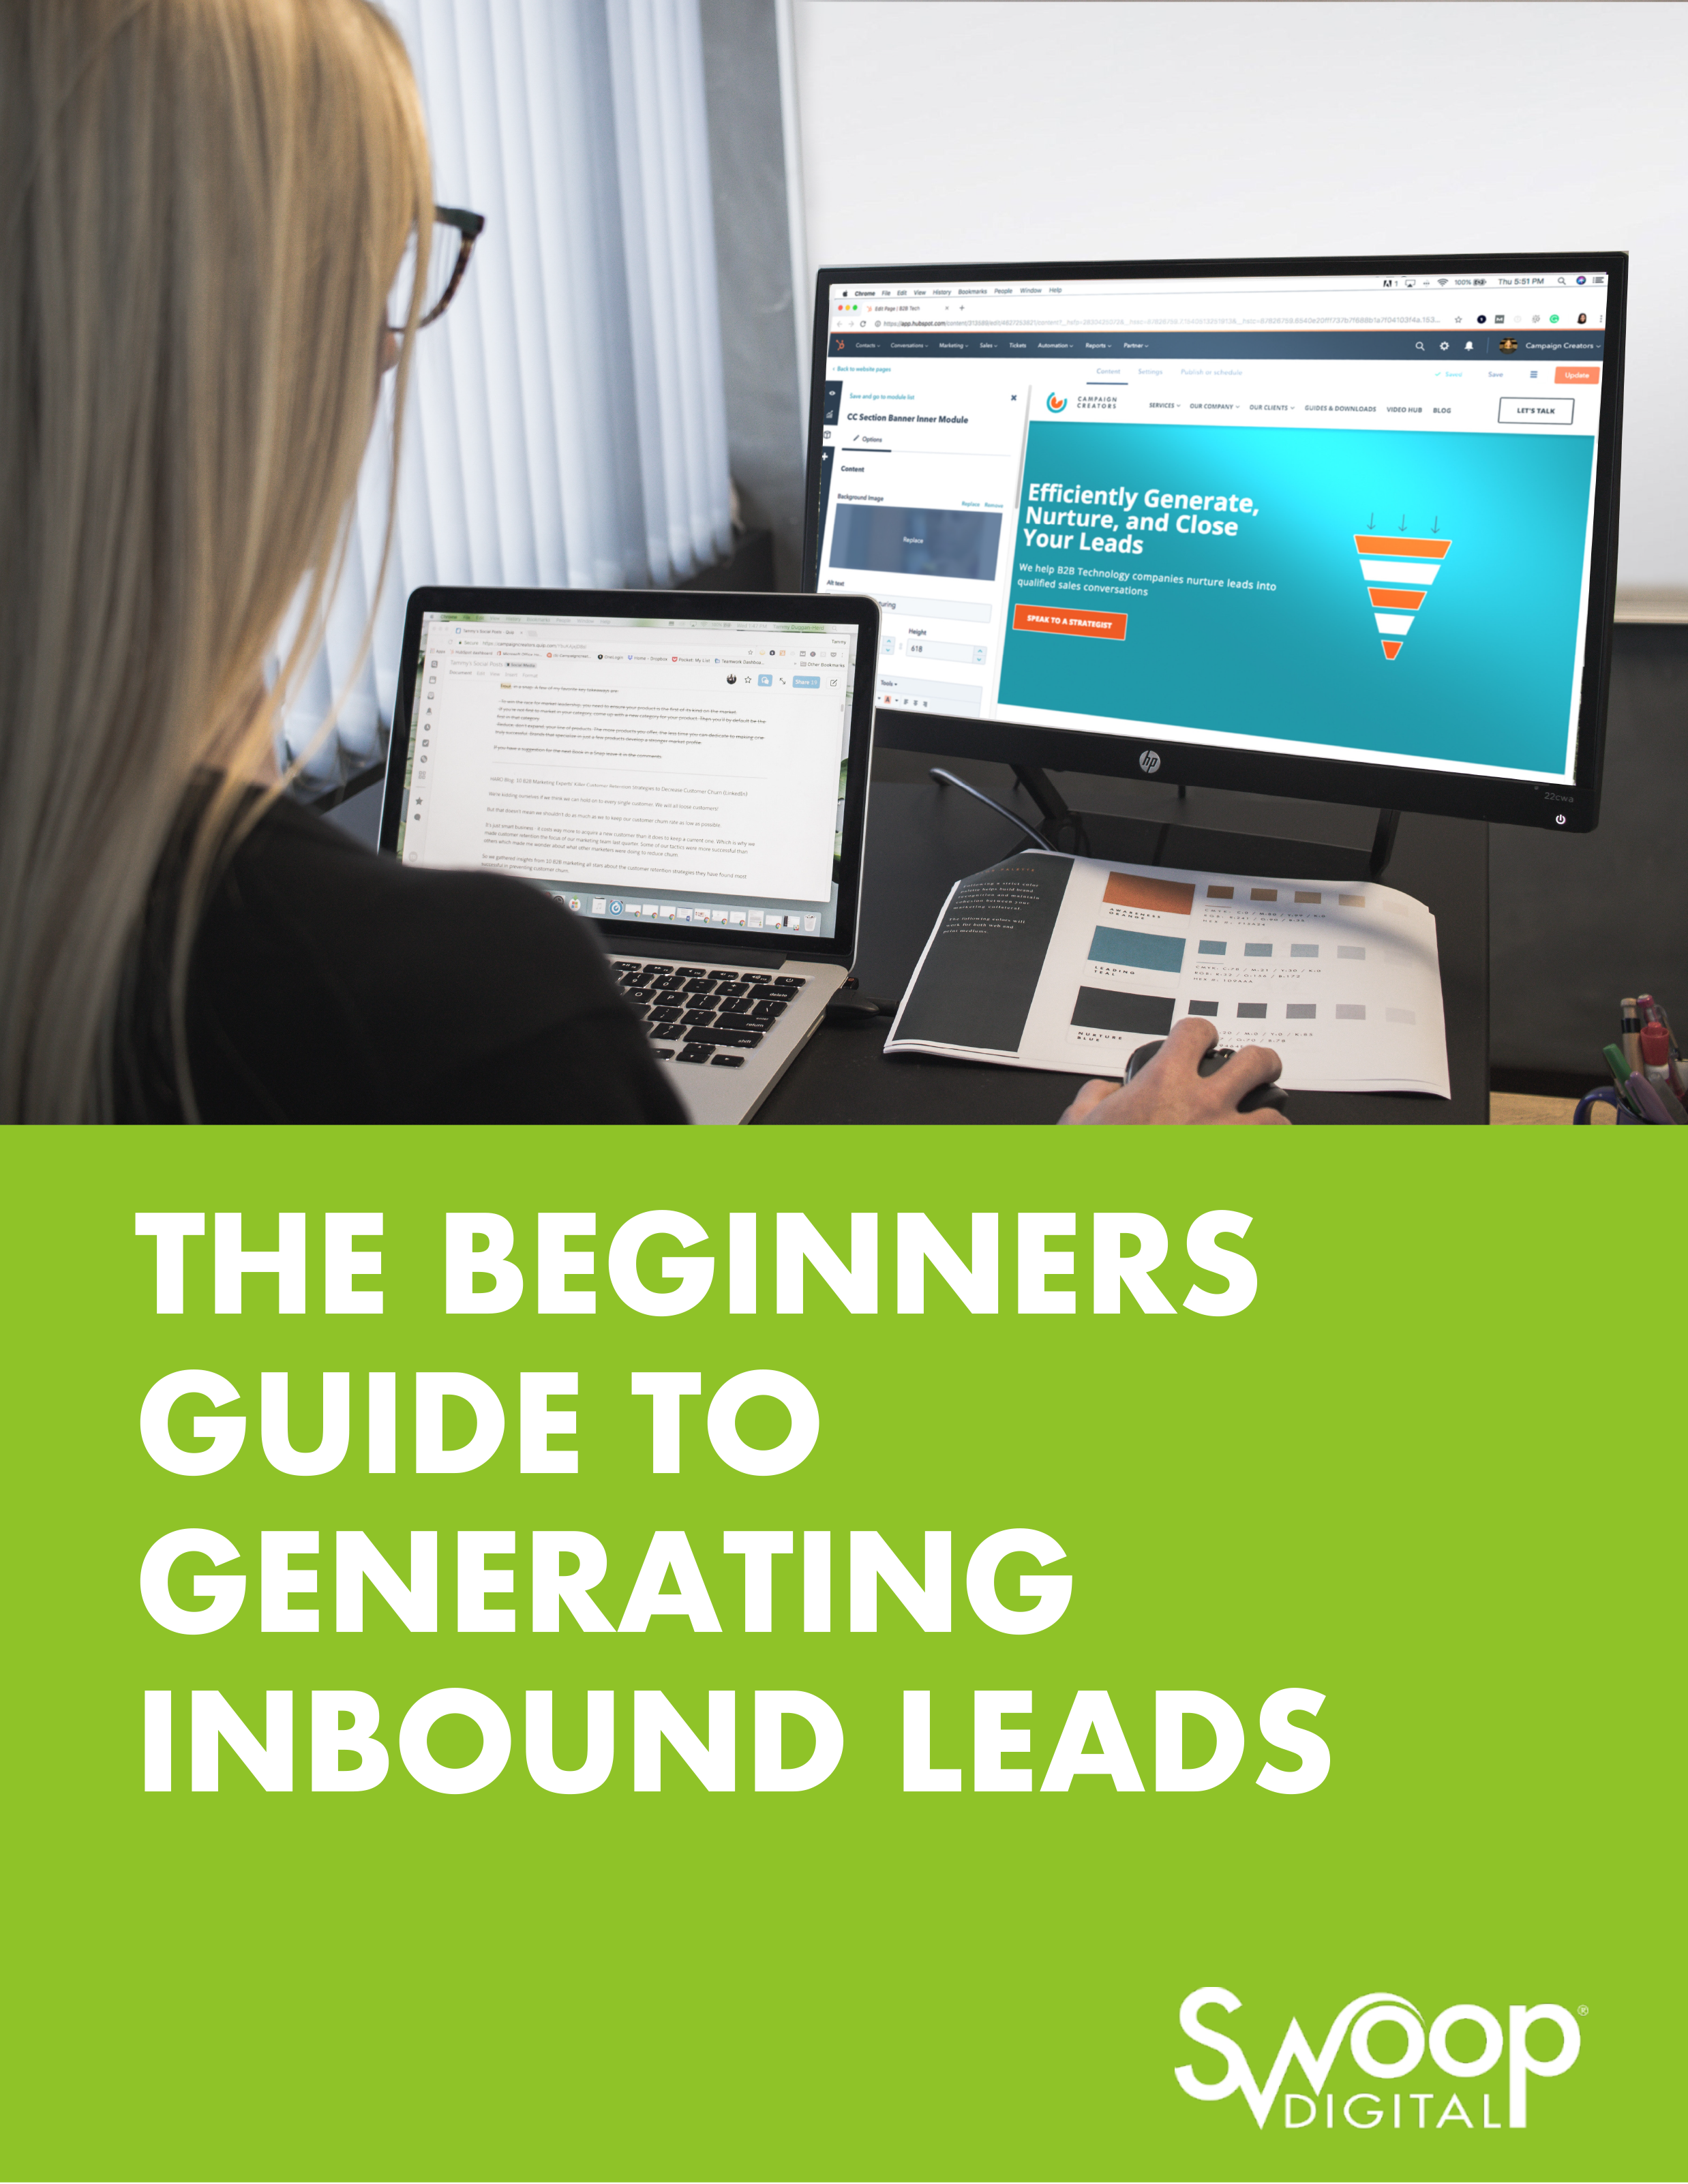 Swoop_The_Beginners_Guide_to_Generating_Inbound_Leads-1